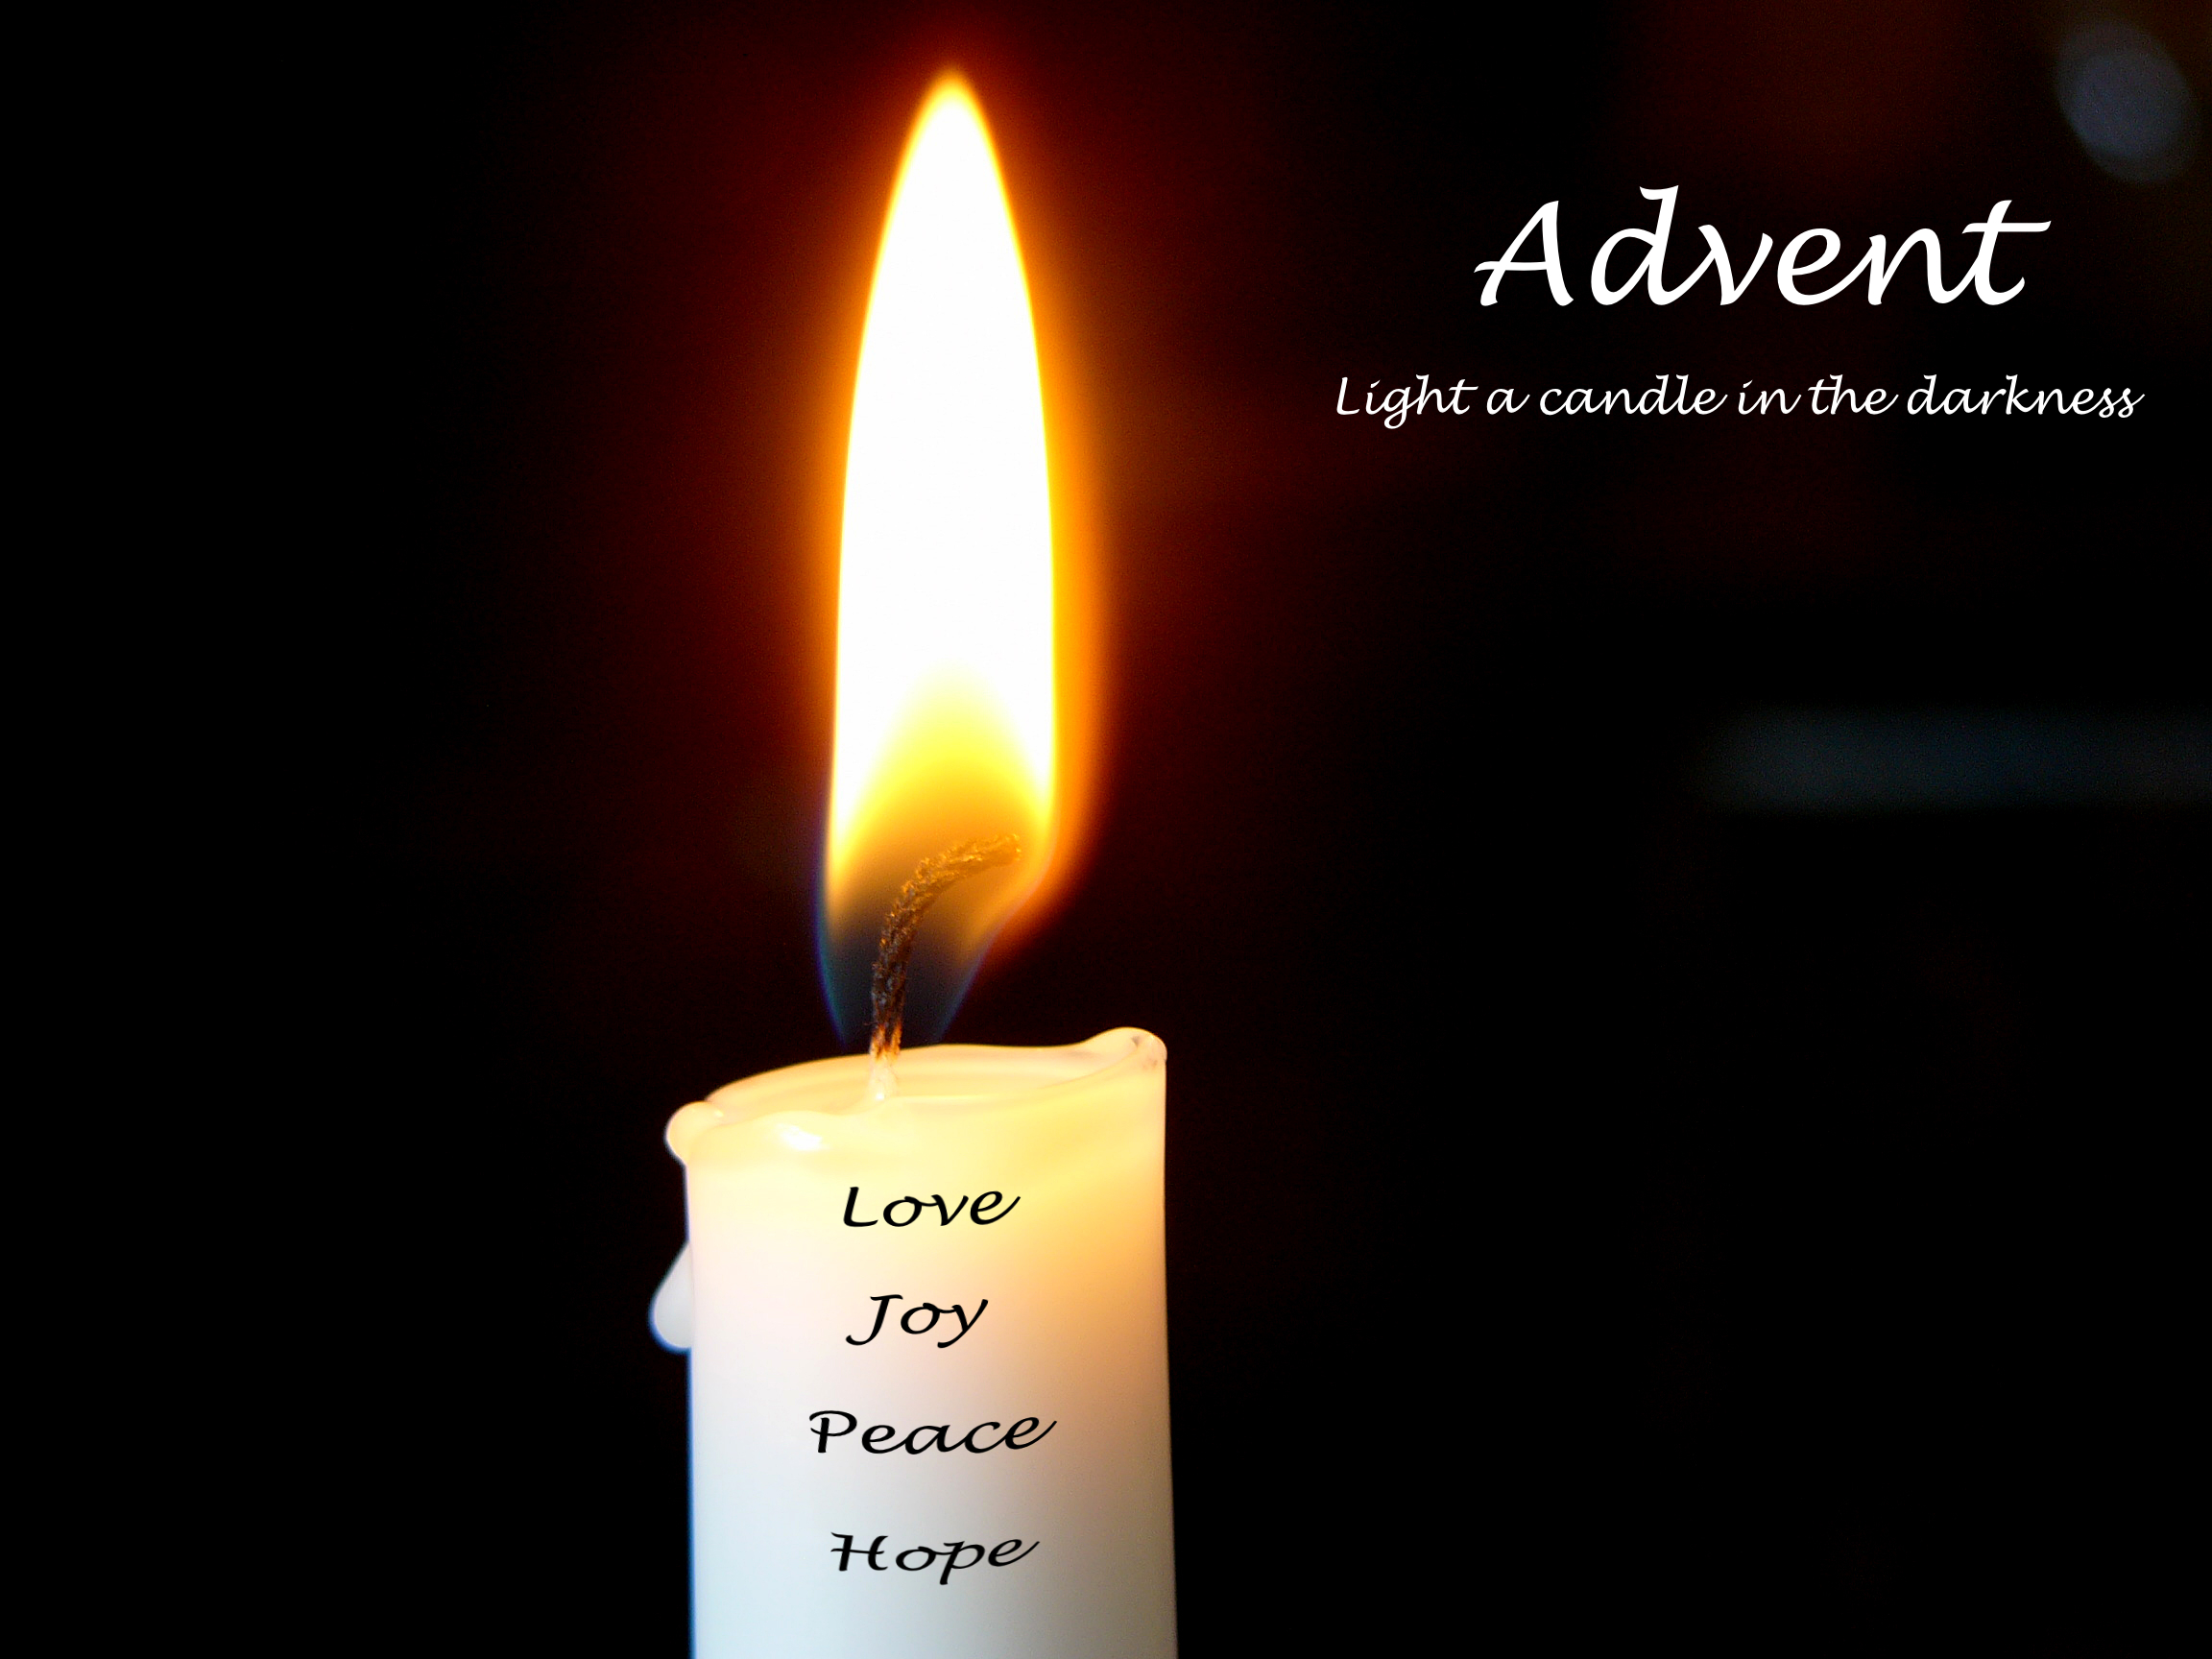 Free light cliparts download. Advent clipart one candle lit